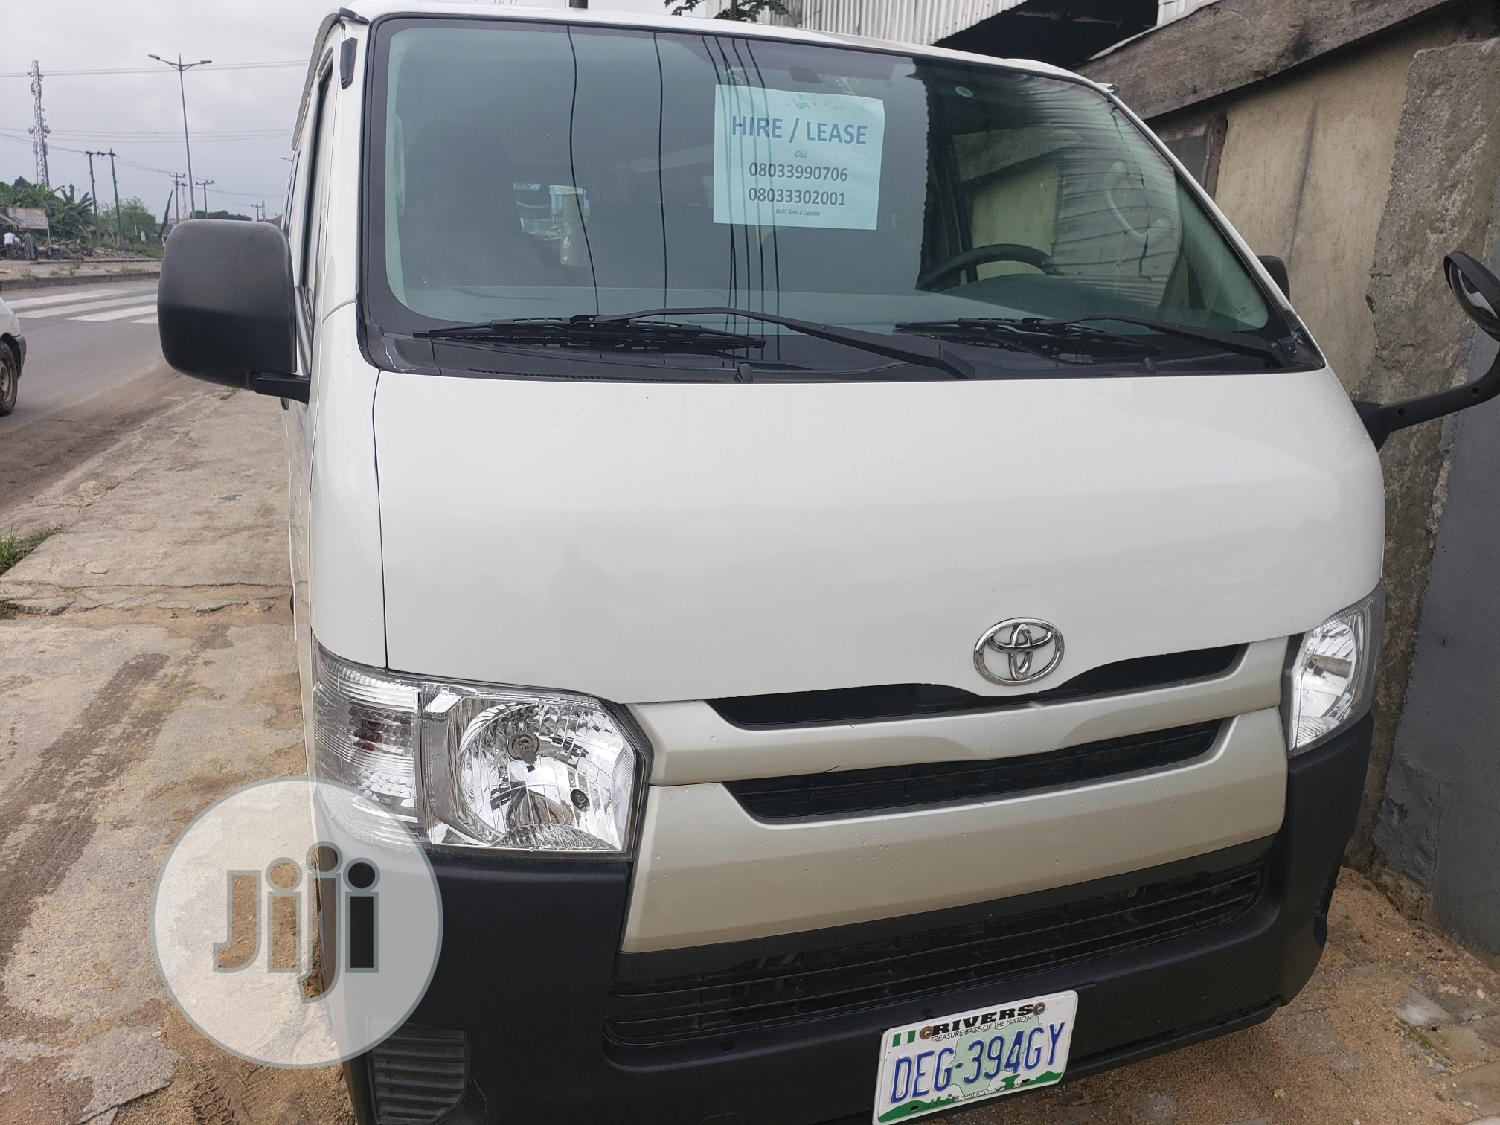 Toyota Hummer Bus For Hire / Lease | Automotive Services for sale in Obio-Akpor, Rivers State, Nigeria